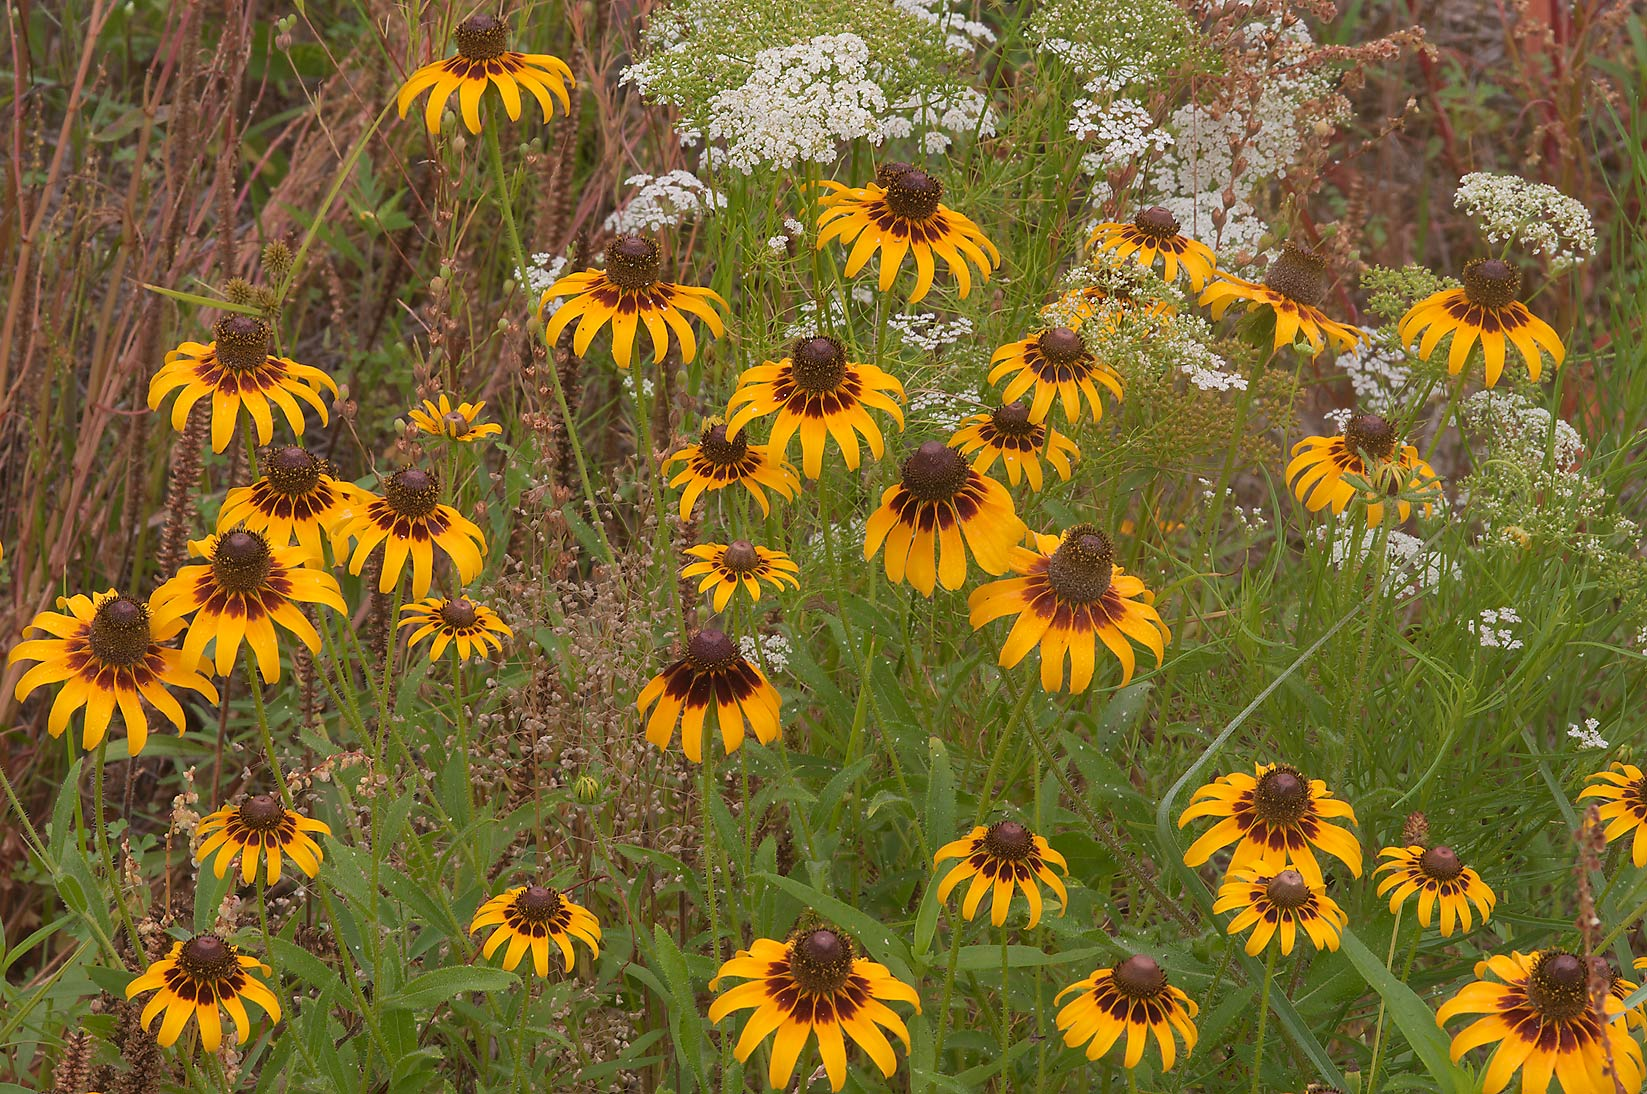 Flowers of Black eyed susan (Rudbeckia hirta) in Lick Creek Park. College Station, Texas